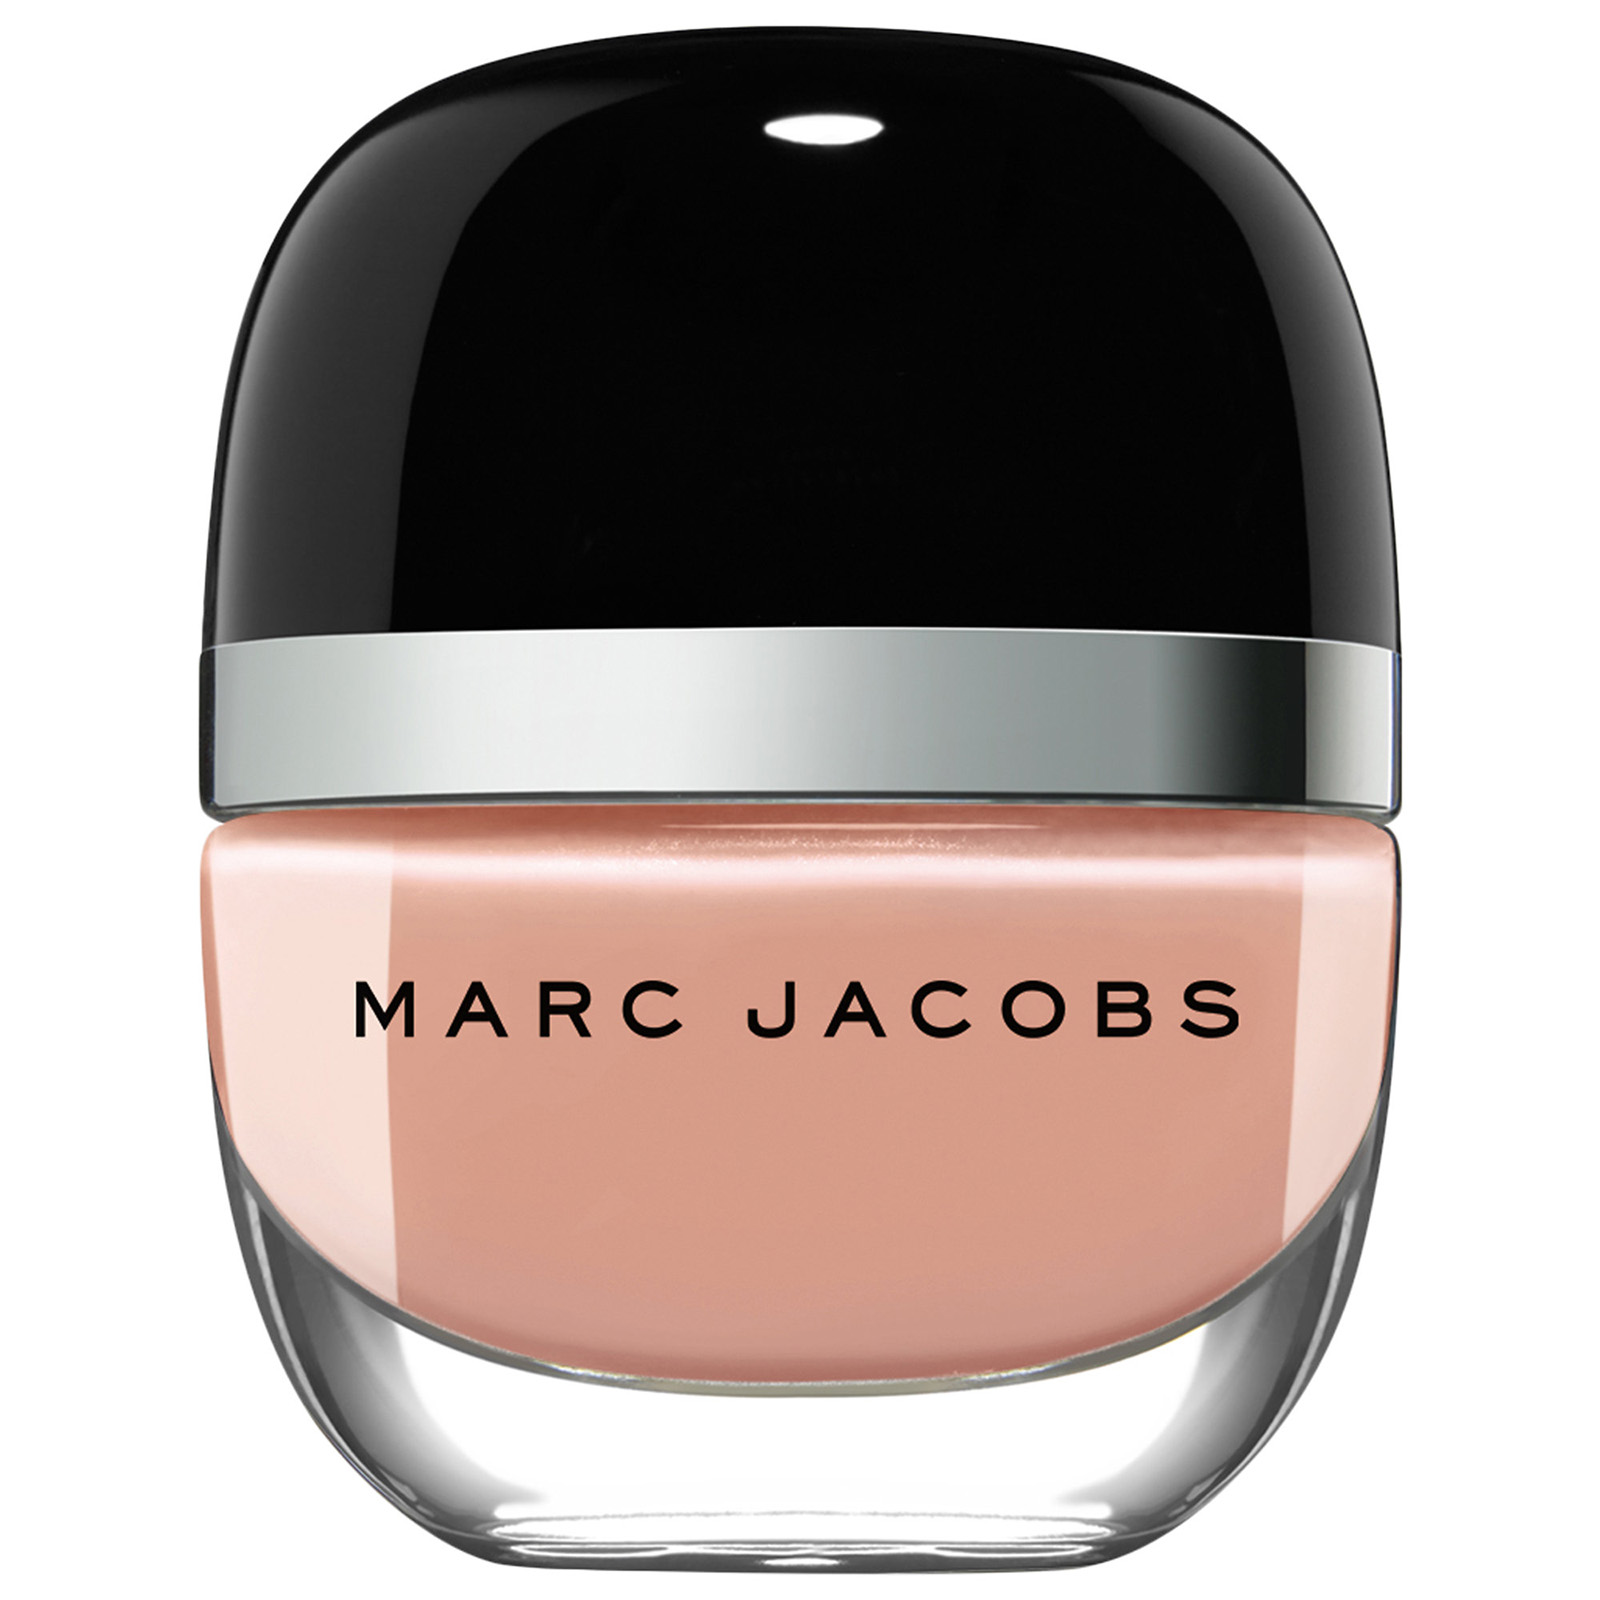 MARC JACOBS BEAUTY Fashion Collection Enamored Hi-Shine Nail Polish in Ladies Night